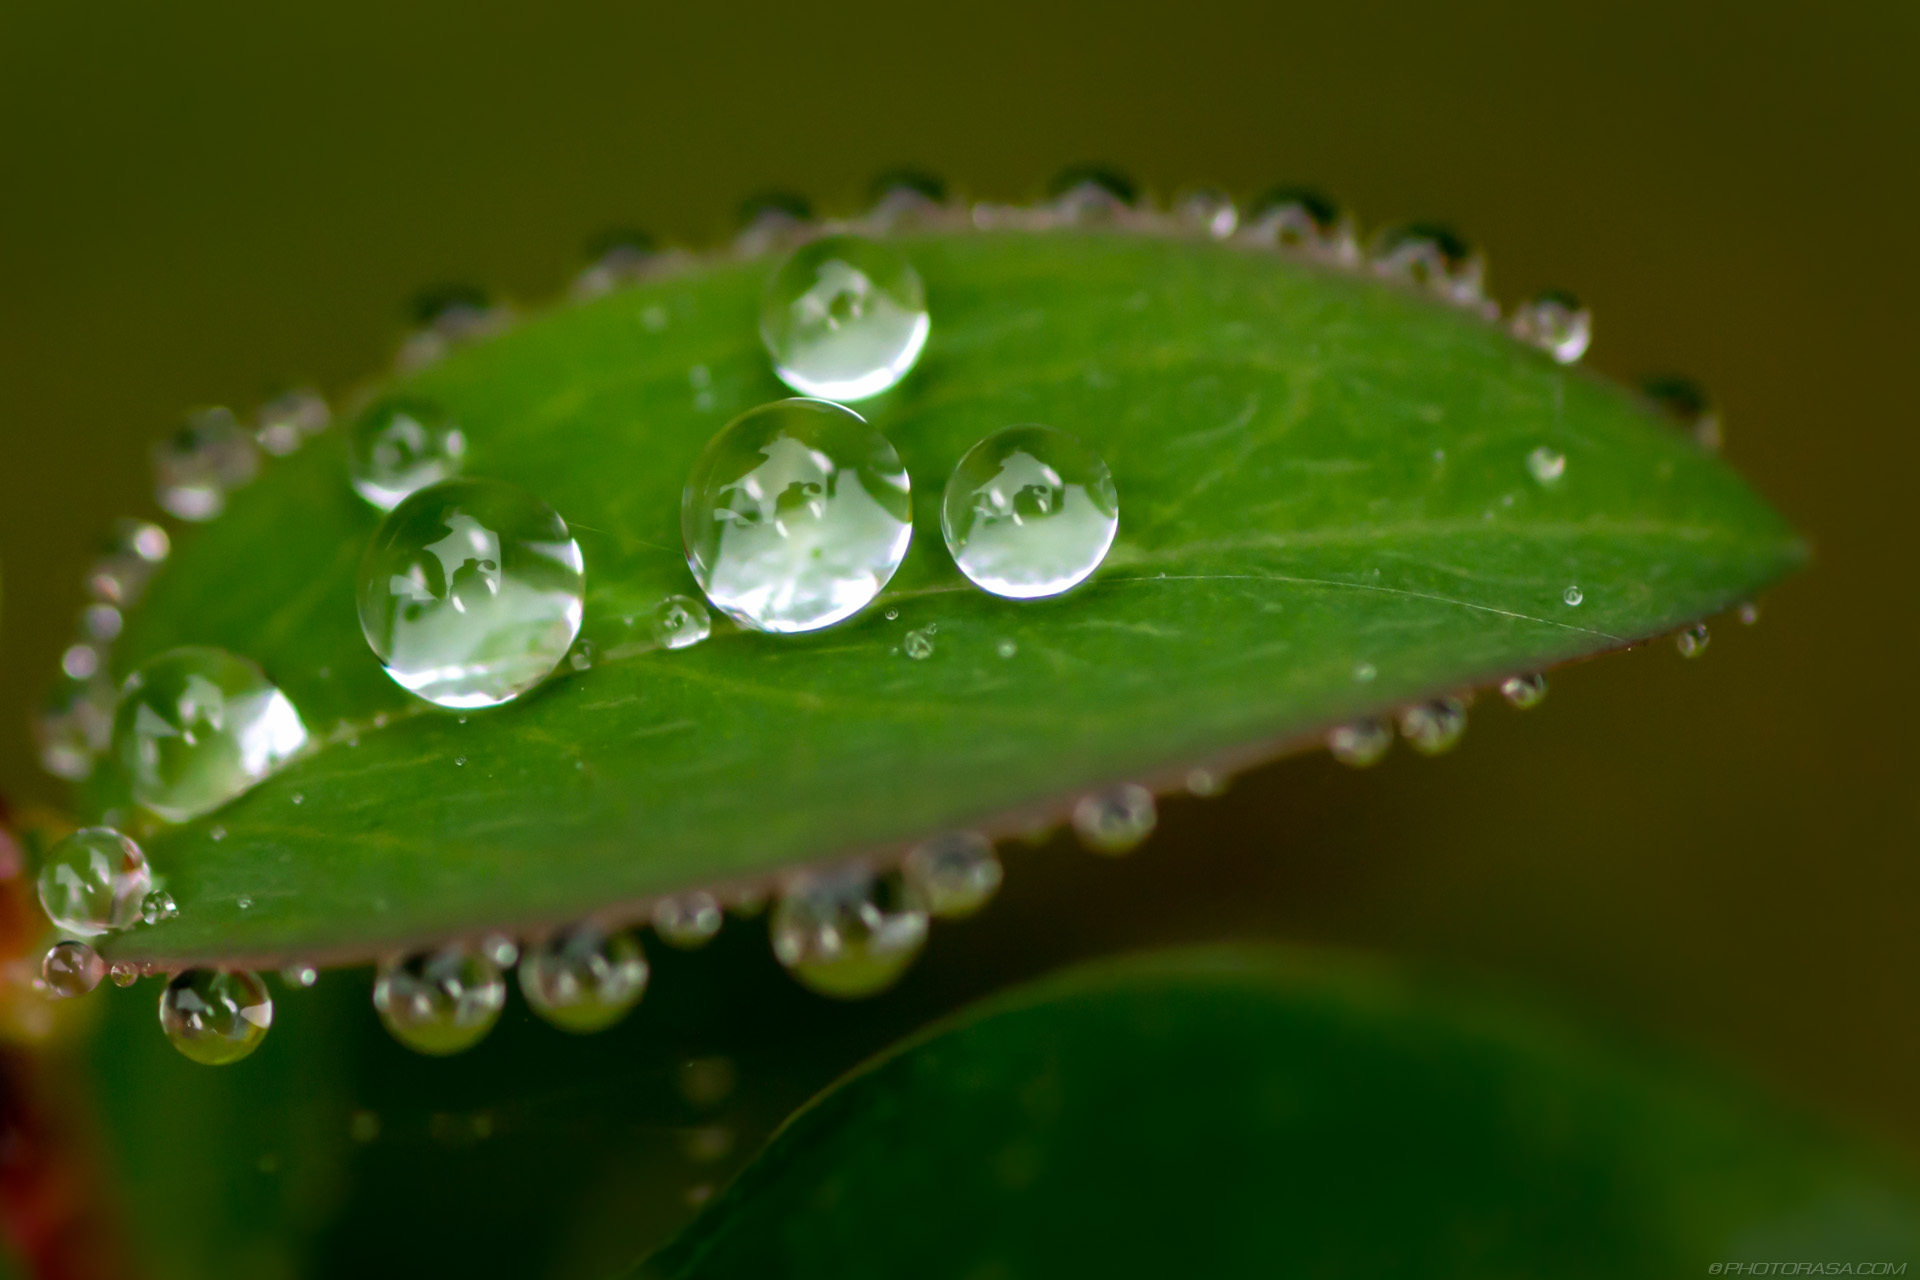 https://photorasa.com/dewdrops-tiny-leaves/round-blobs-of-water-on-tiny-leaf/